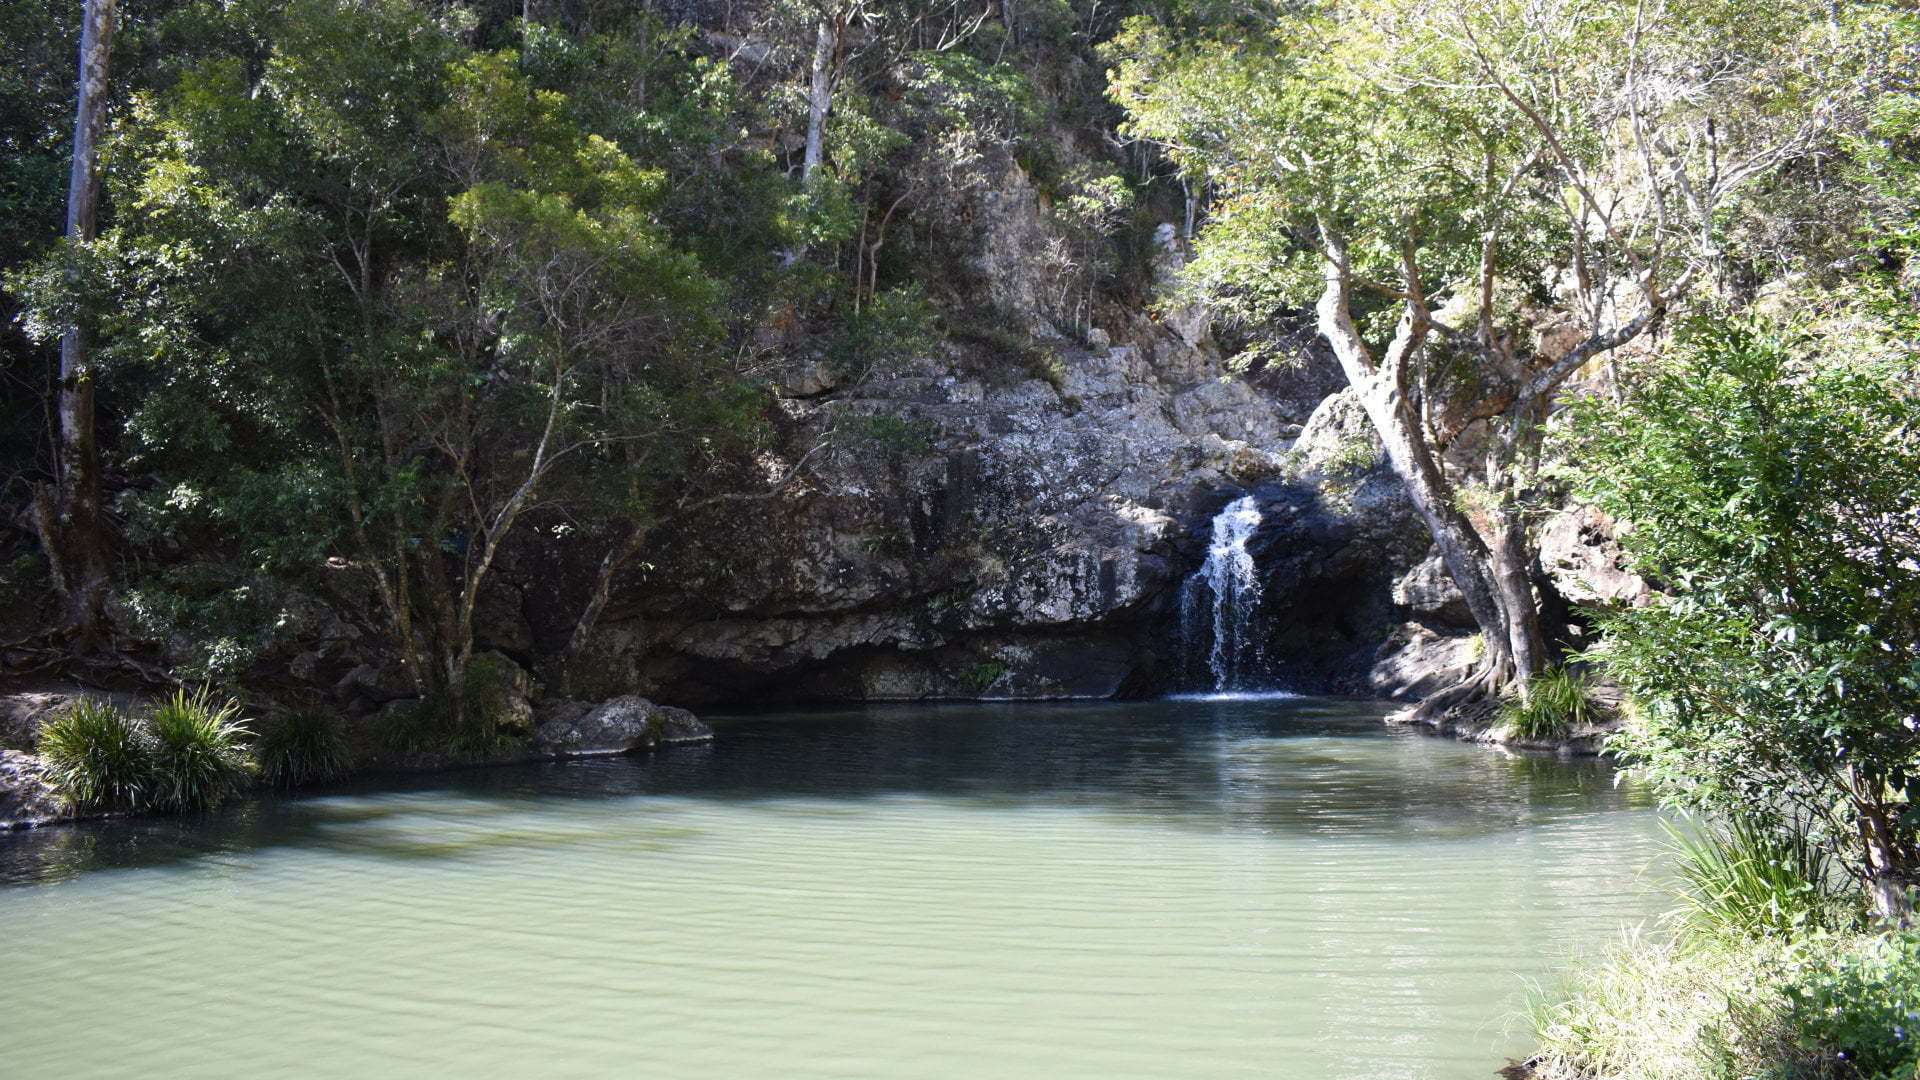 Large rockpool with a small waterfall in the background, at the Kondalilla Falls National Park